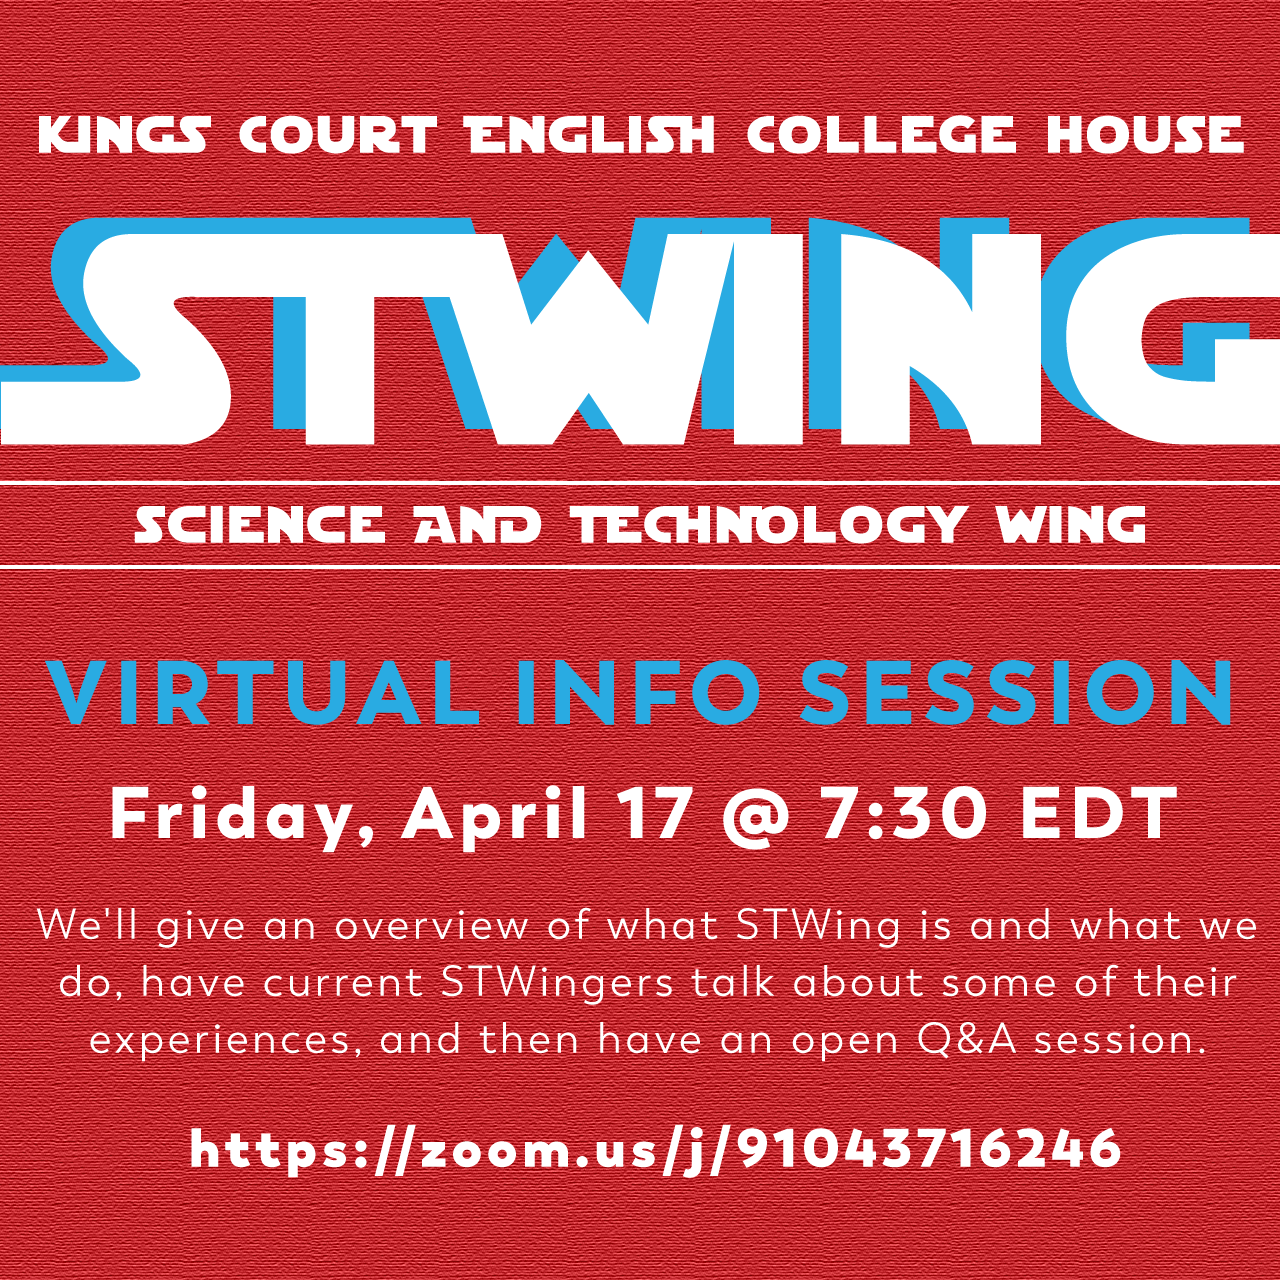 Kings Court English College House's STWING (Science and Technology Wing) is holding a virtual info session at 7:30pm EST on Friday, April 17th! We'll give an overview of what STWing is and what we do, have current STWingers talk about some of their experiences, and then have an open Q&A session. Please join the session at https://zoom.us/j/91043716246!